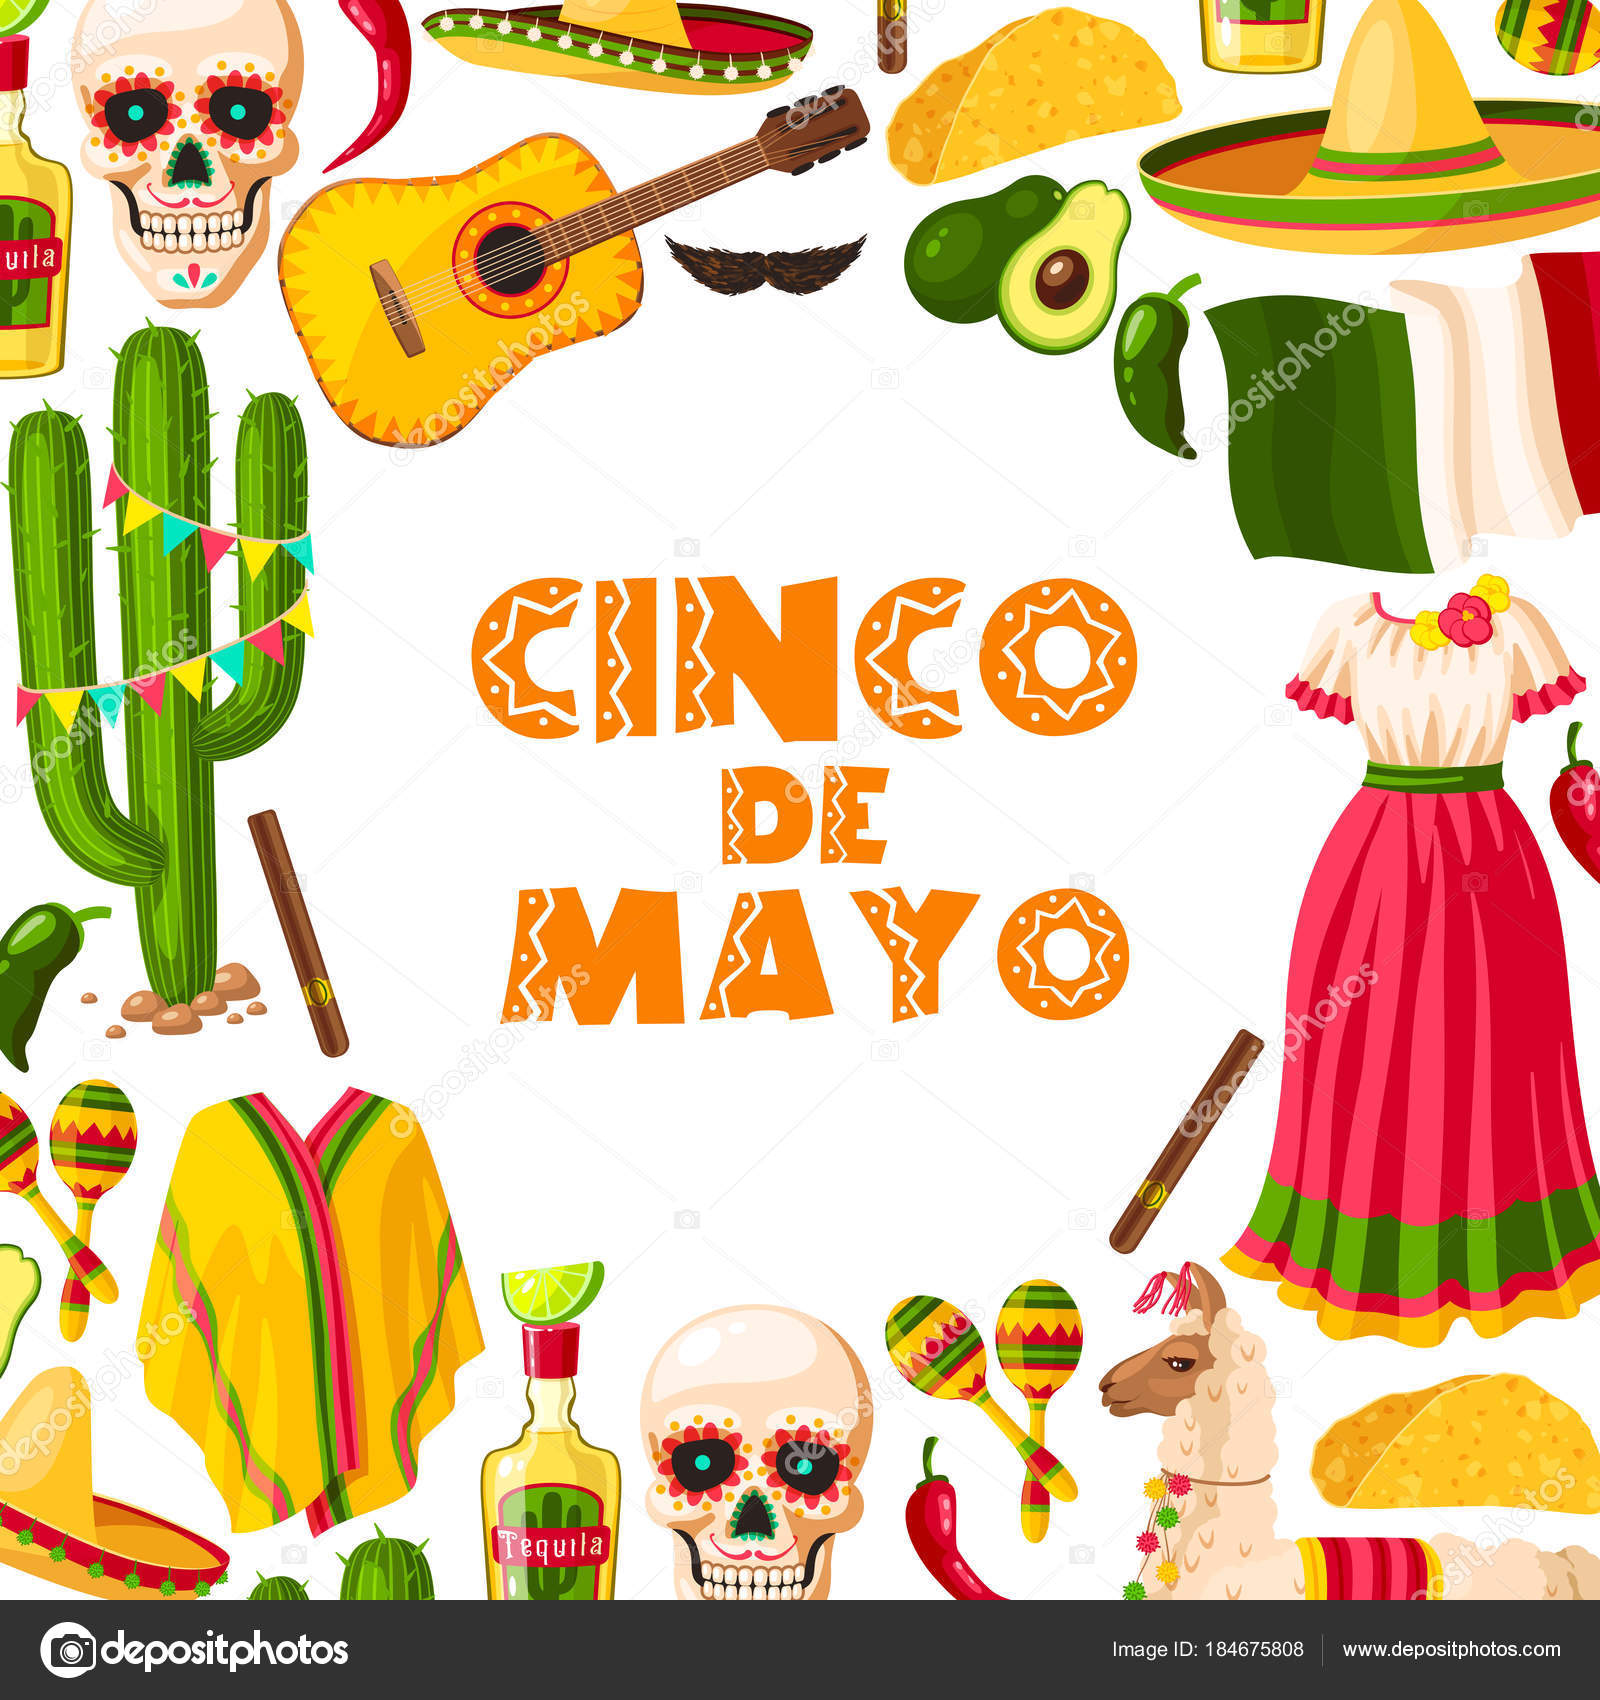 Cinco de mayo festive card of mexican fiesta party stock vector cinco de mayo mexican holiday greeting card for puebla battle victory celebration fiesta party sombrero maracas and cactus chili pepper or jalapeno m4hsunfo Image collections